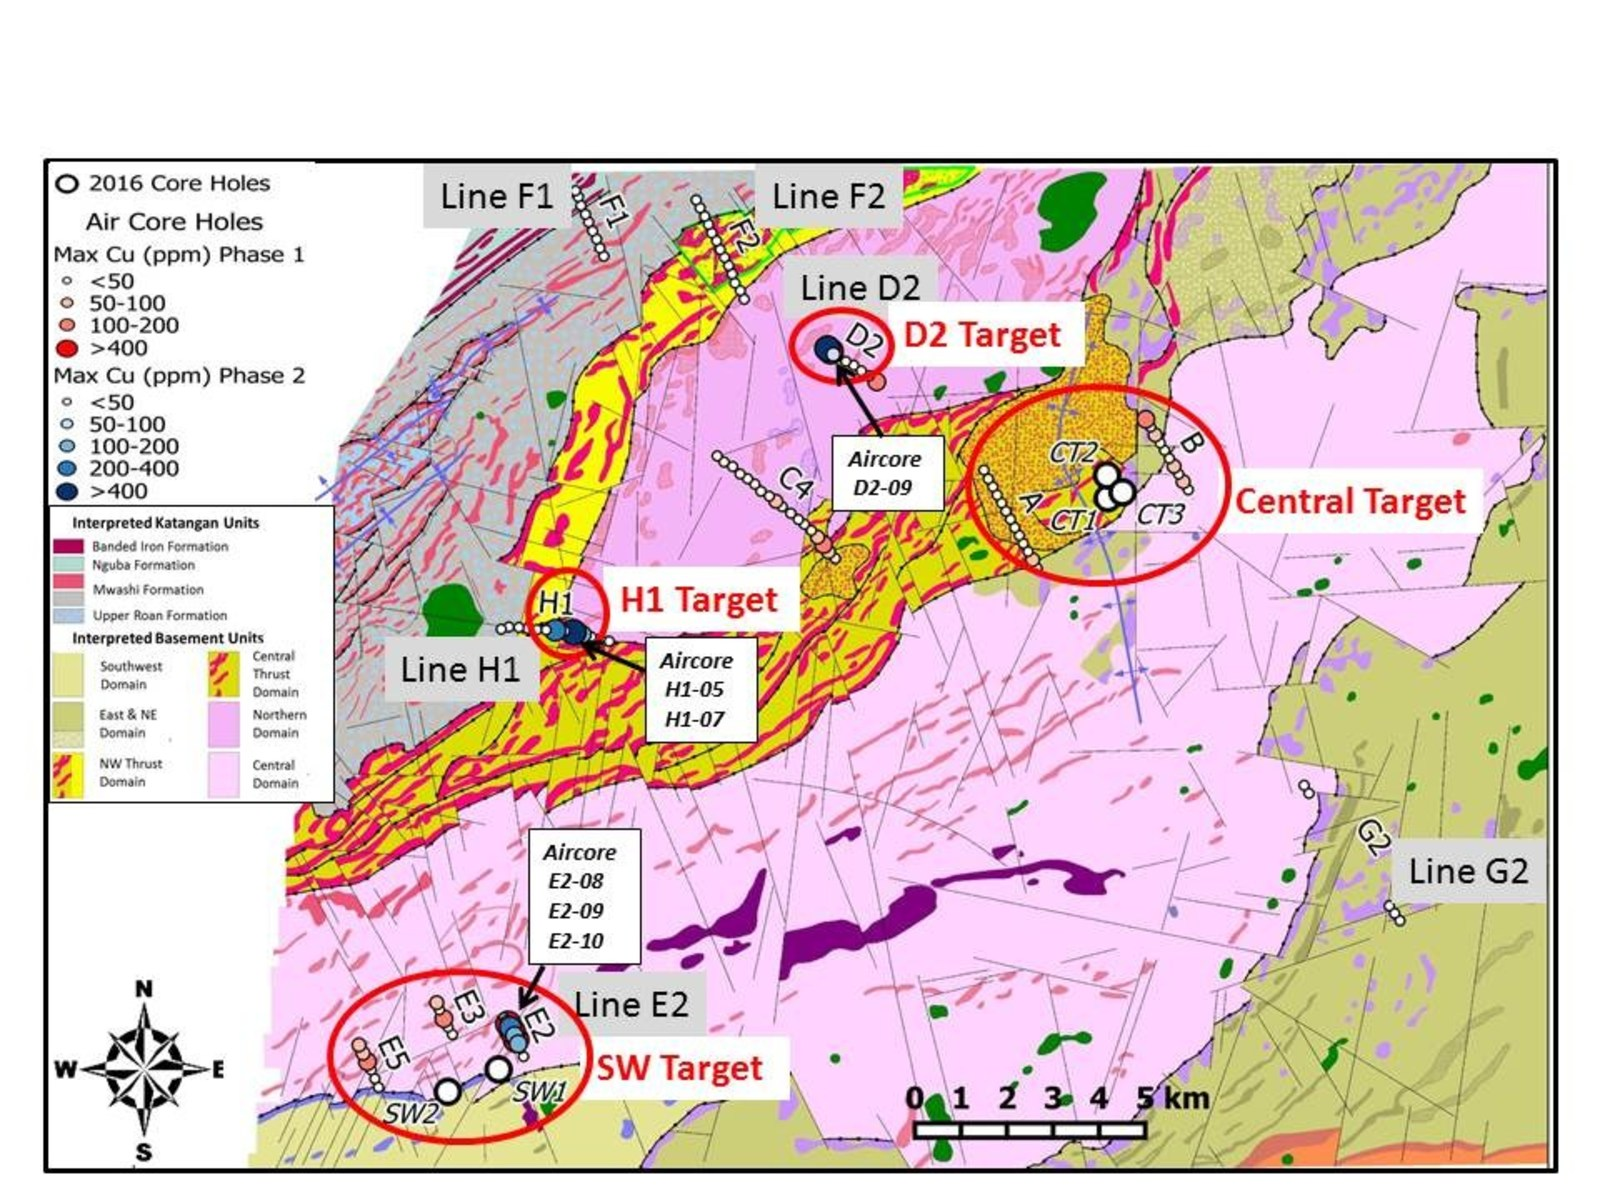 Figure 2: Plan View of Phase 1 & 2 Aircore Results & Licence Scale Magnetic Interpretation of Bedrock Geology